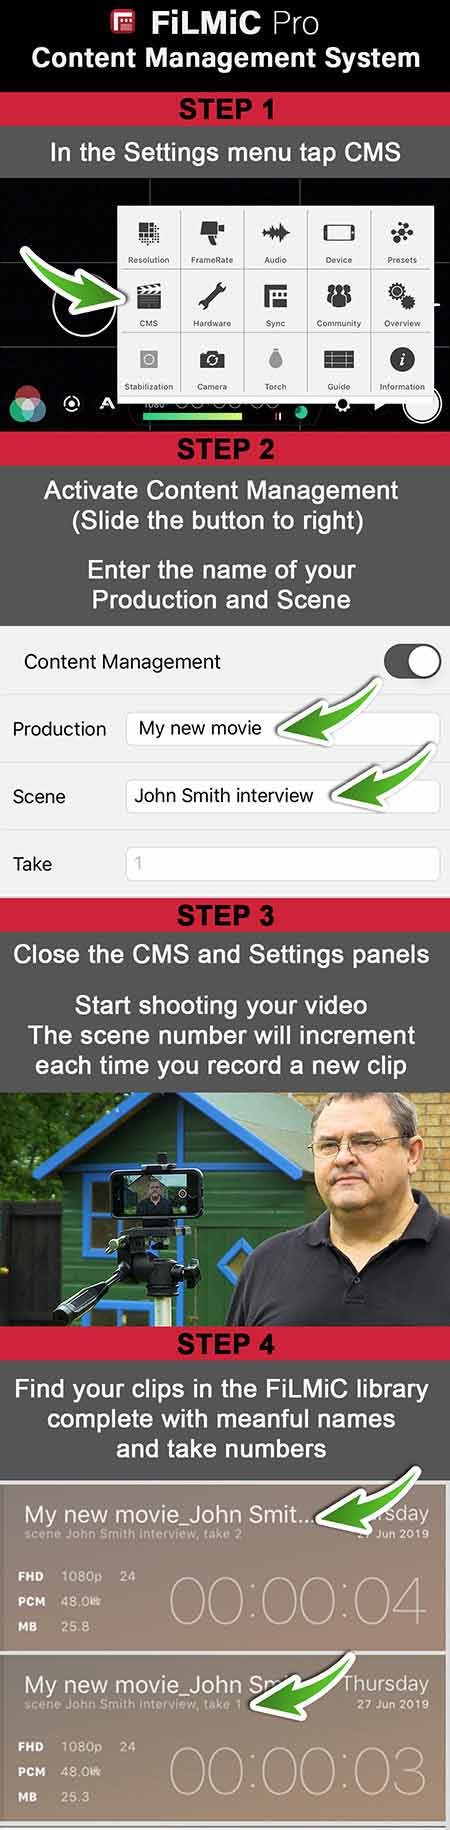 An infographic showing how to use Filmic Pro's Content Management System or CMS